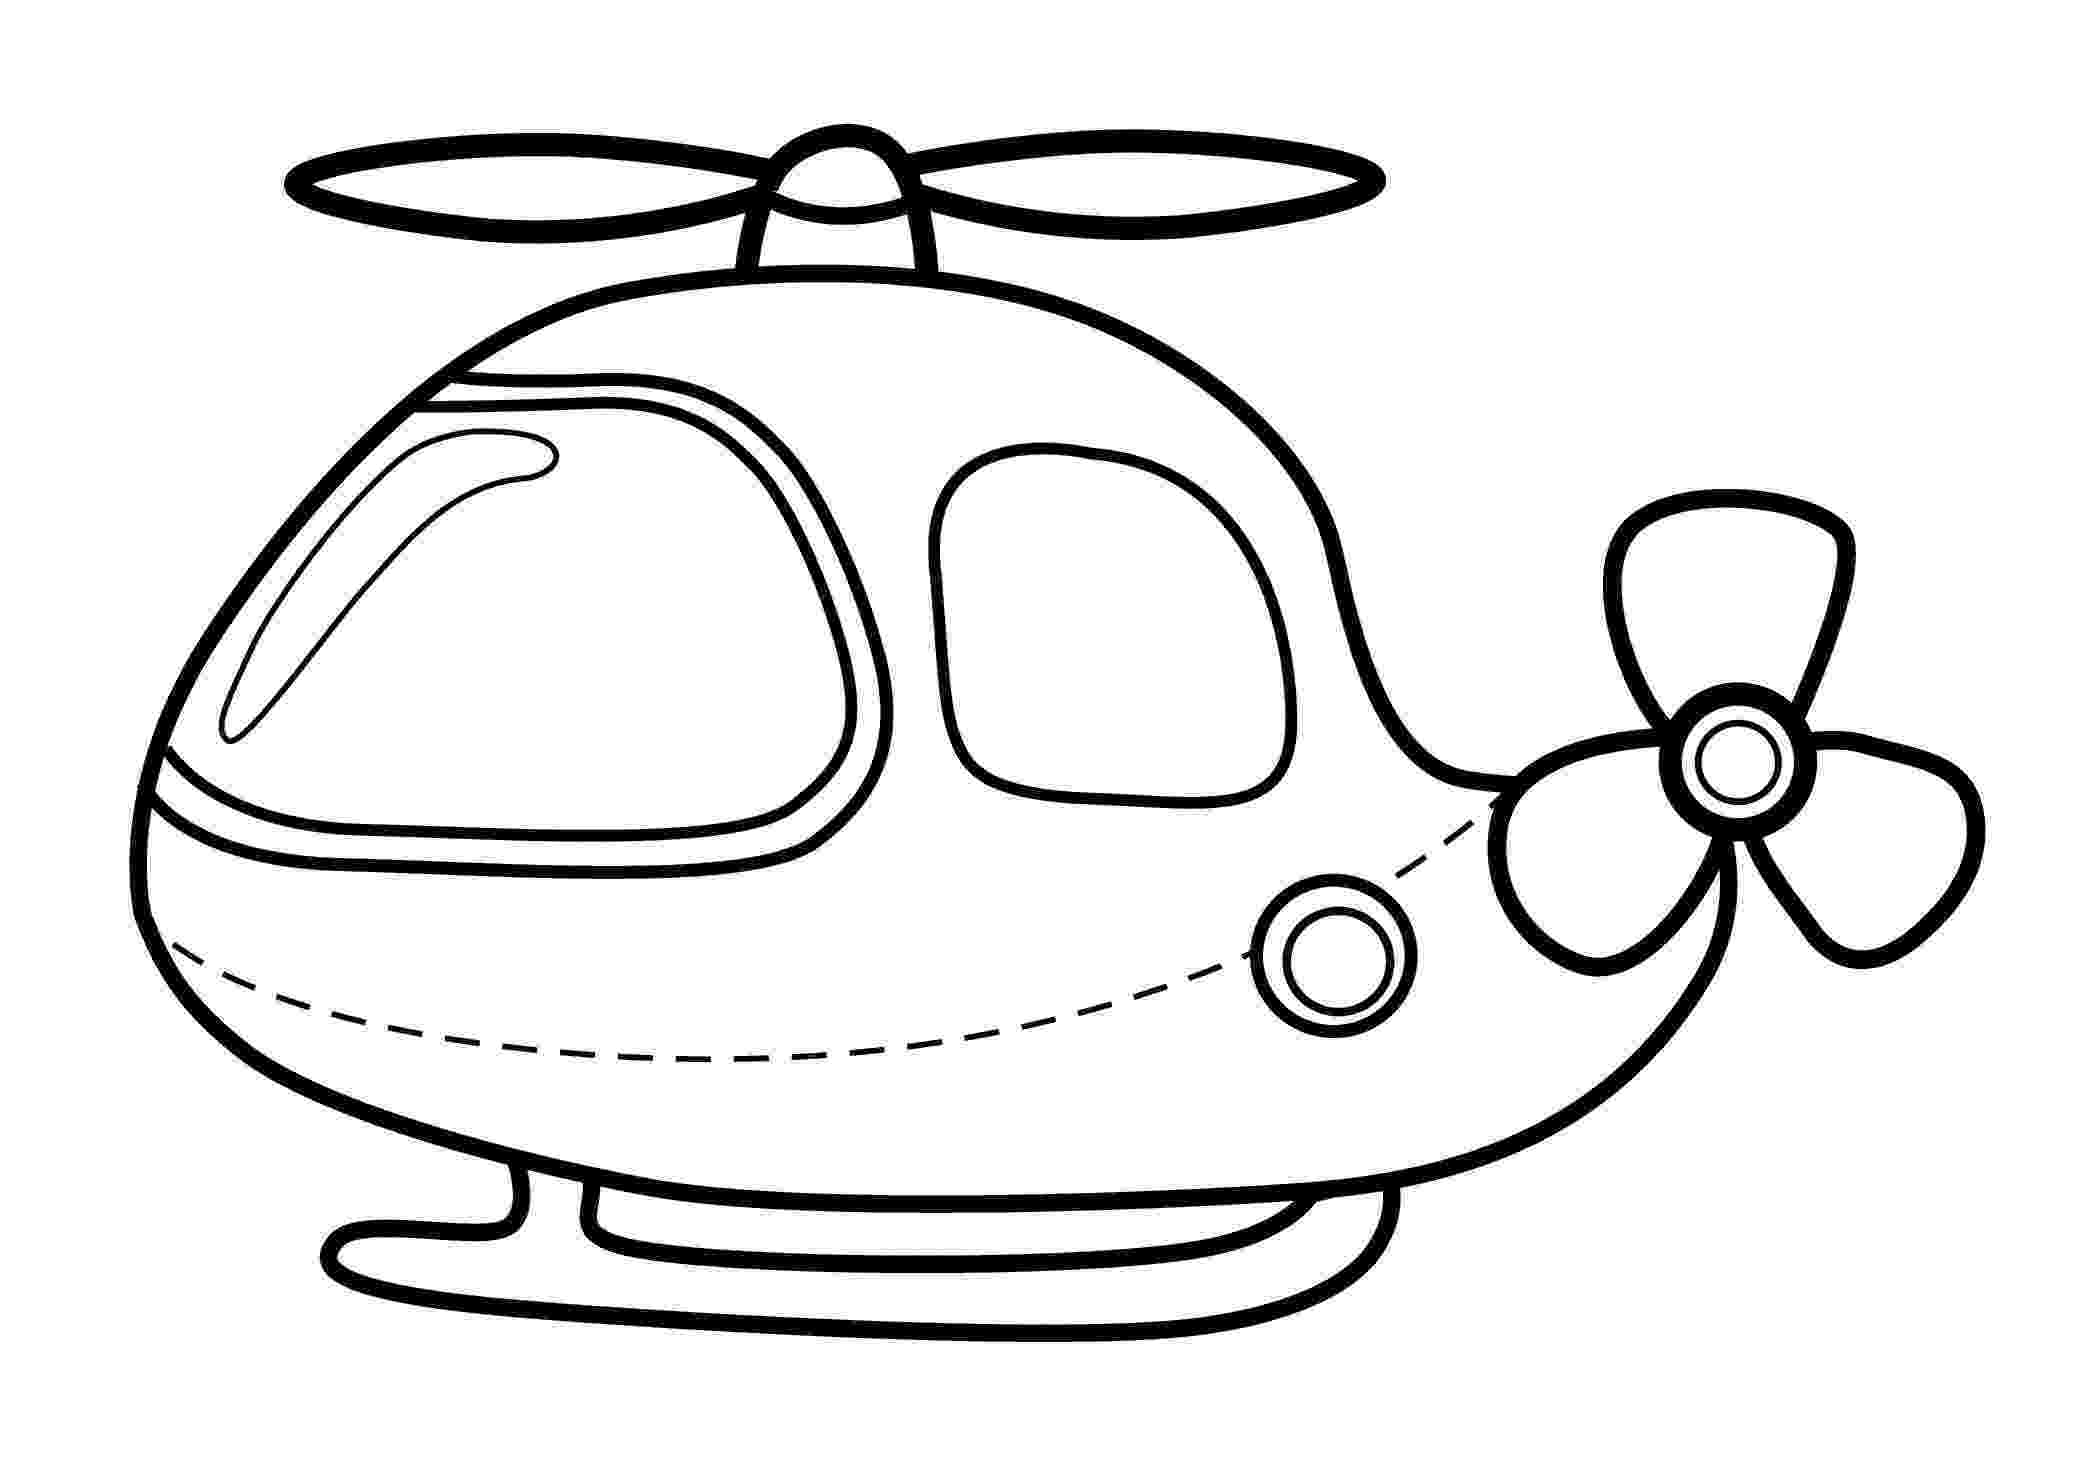 helicopter coloring page helicopter coloring pages to download and print for free page coloring helicopter